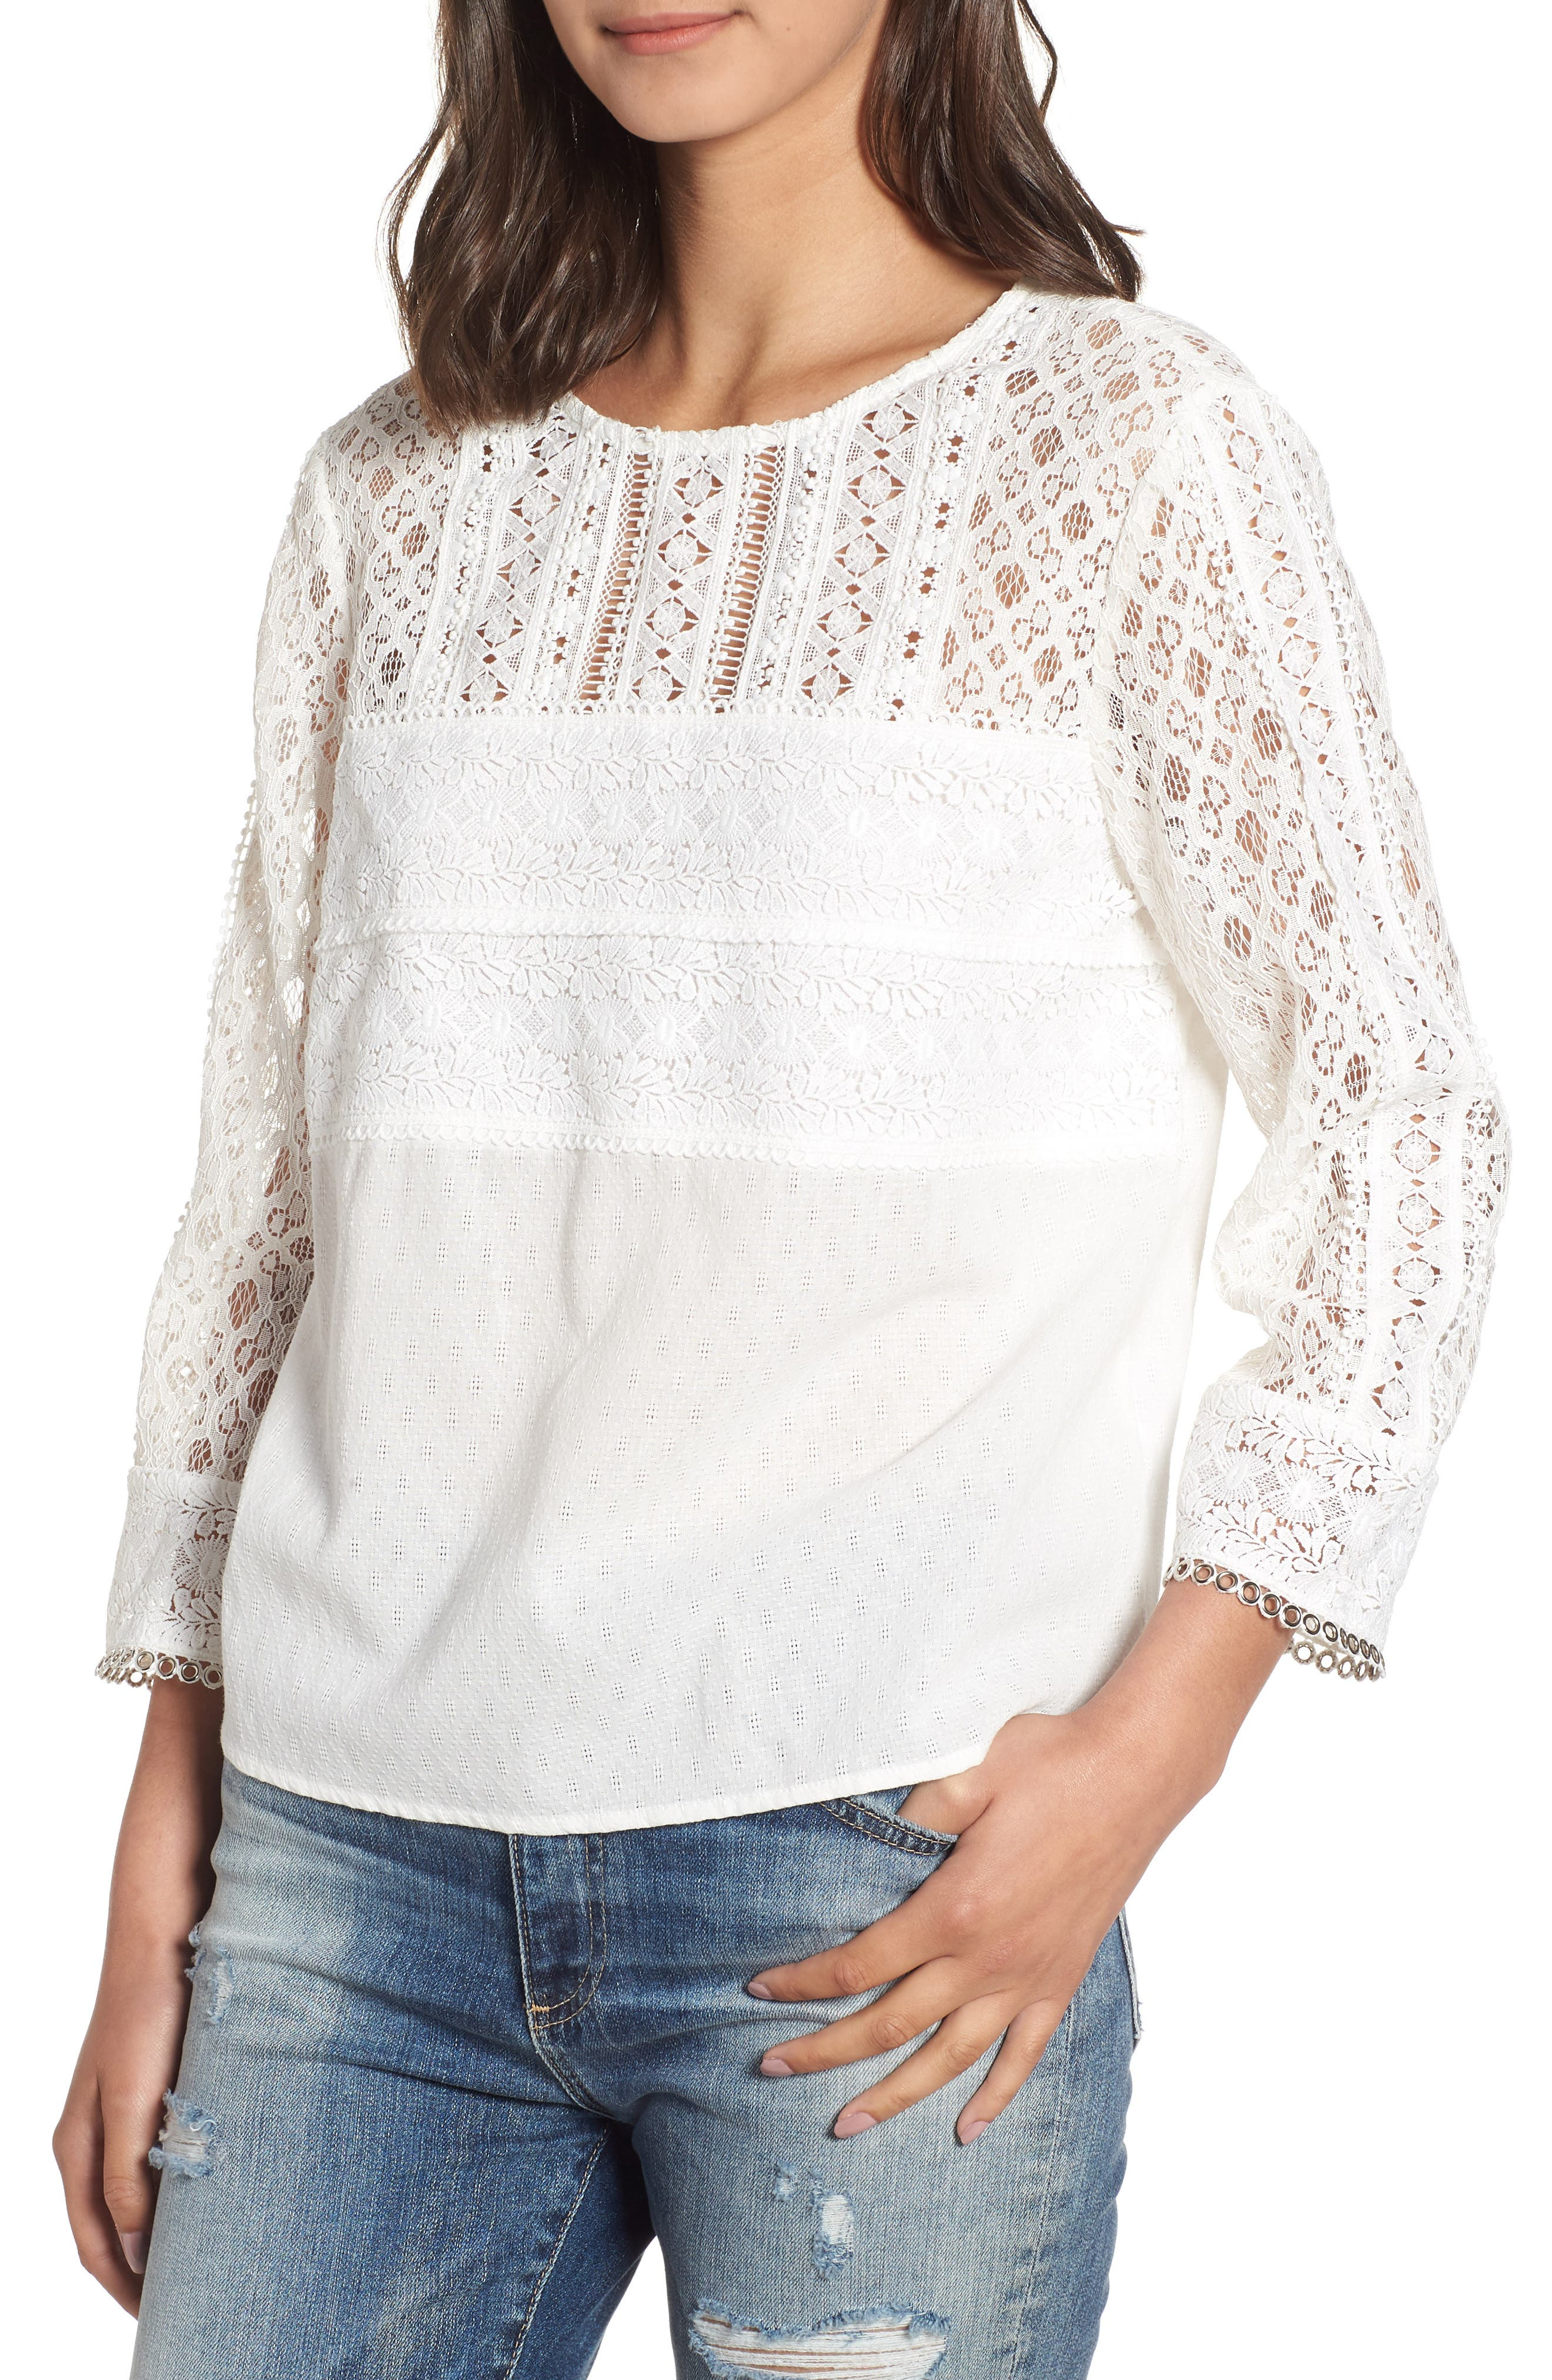 HEARTLOOM SHAYLA LACE DETAIL COTTON EYELET TOP